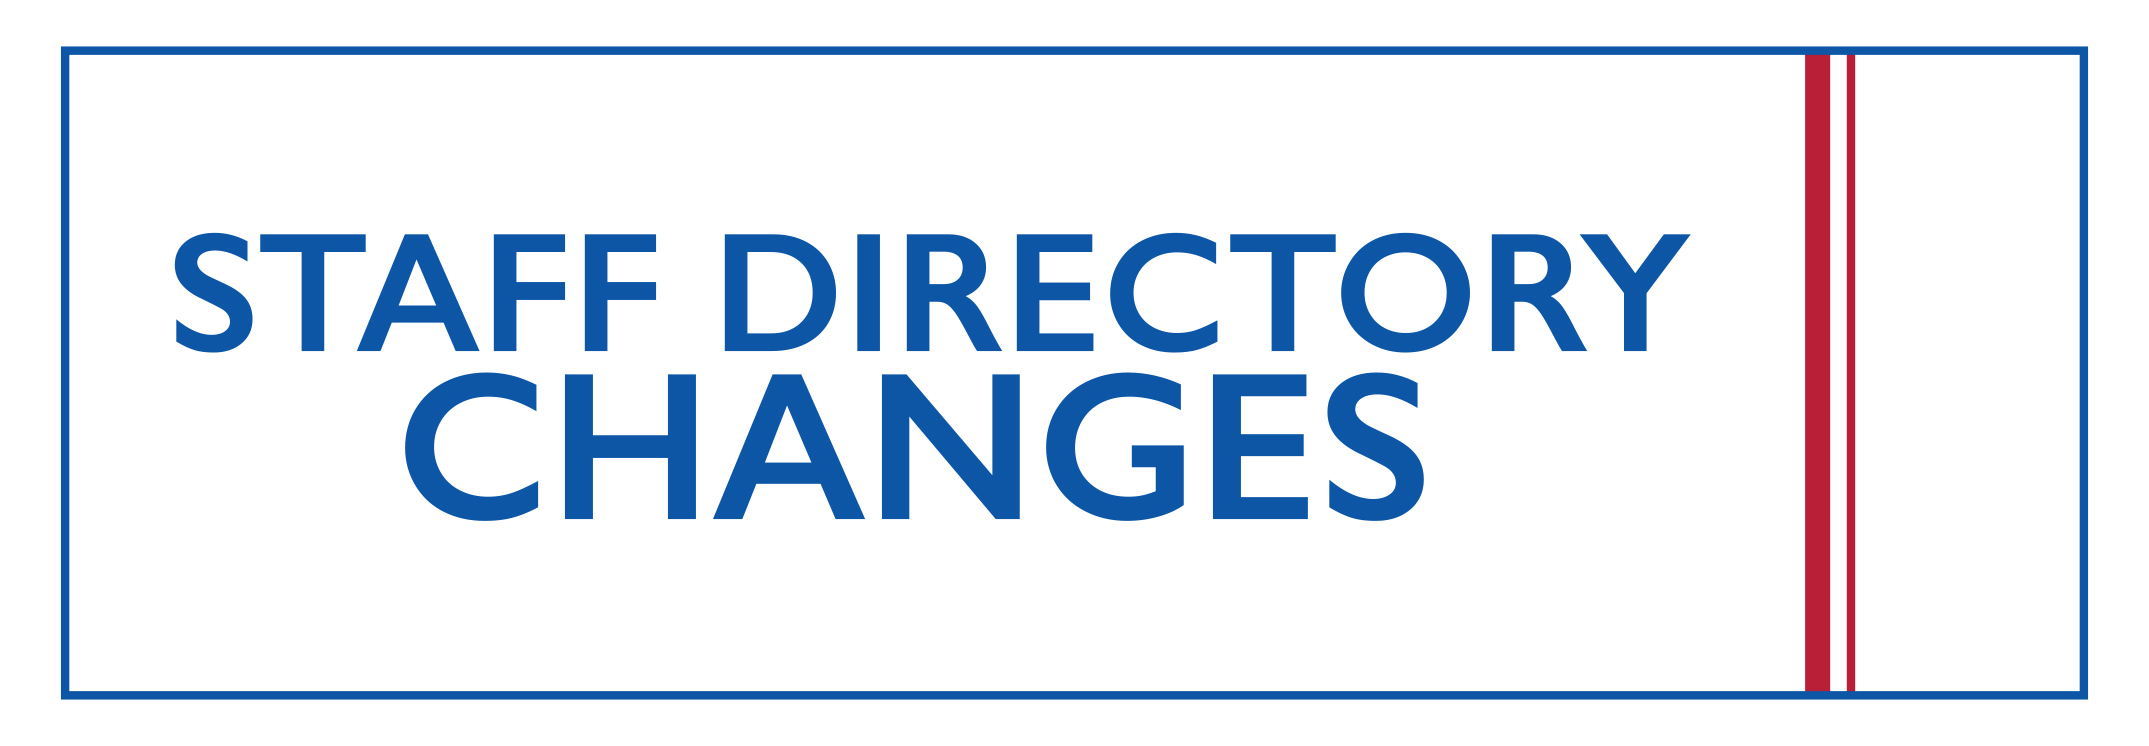 Staff Directory Changes